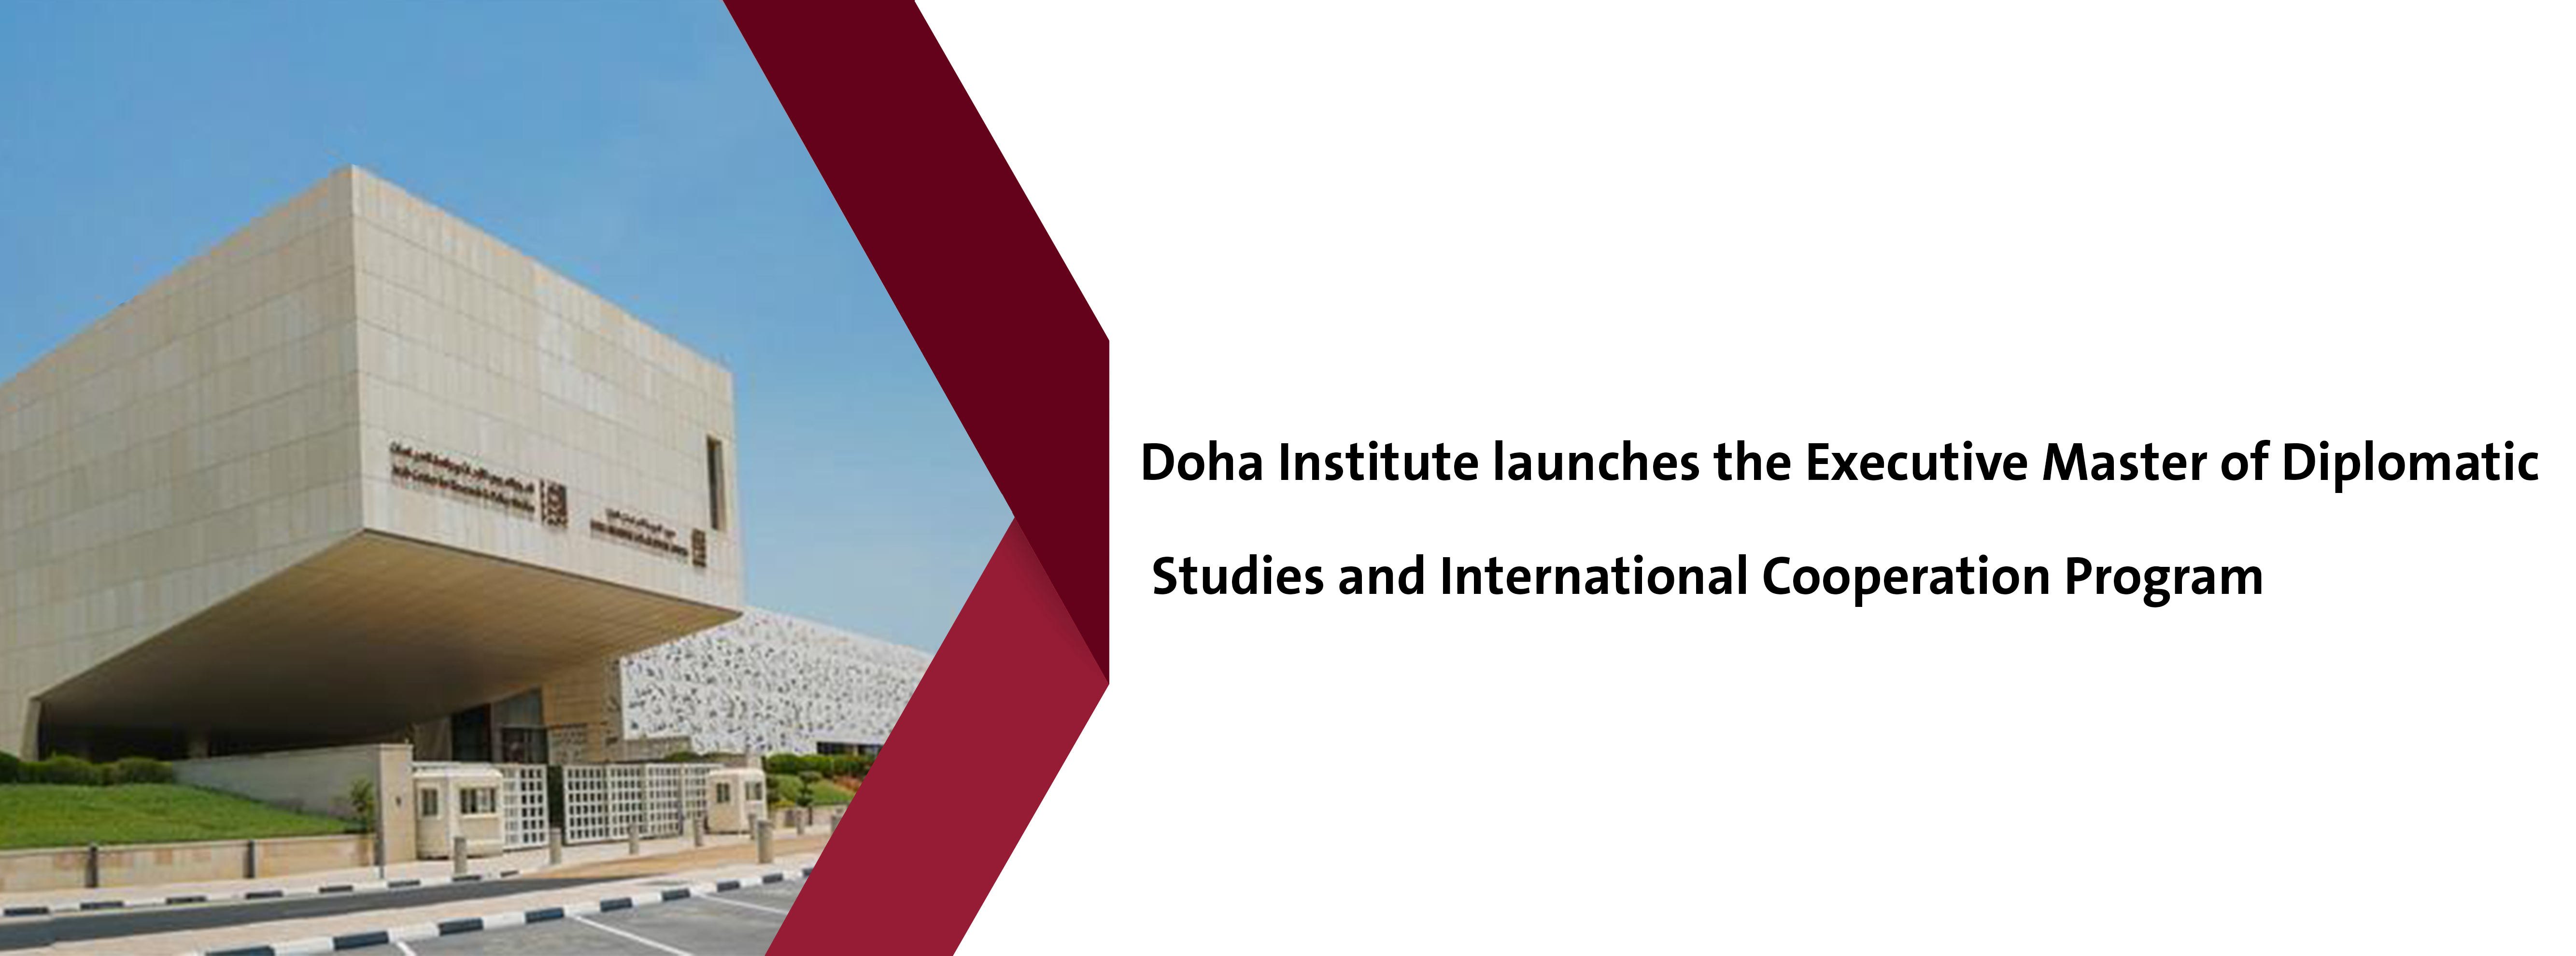 Doha Institute launches the Executive Master of Diplomatic Studies and International Cooperation Program